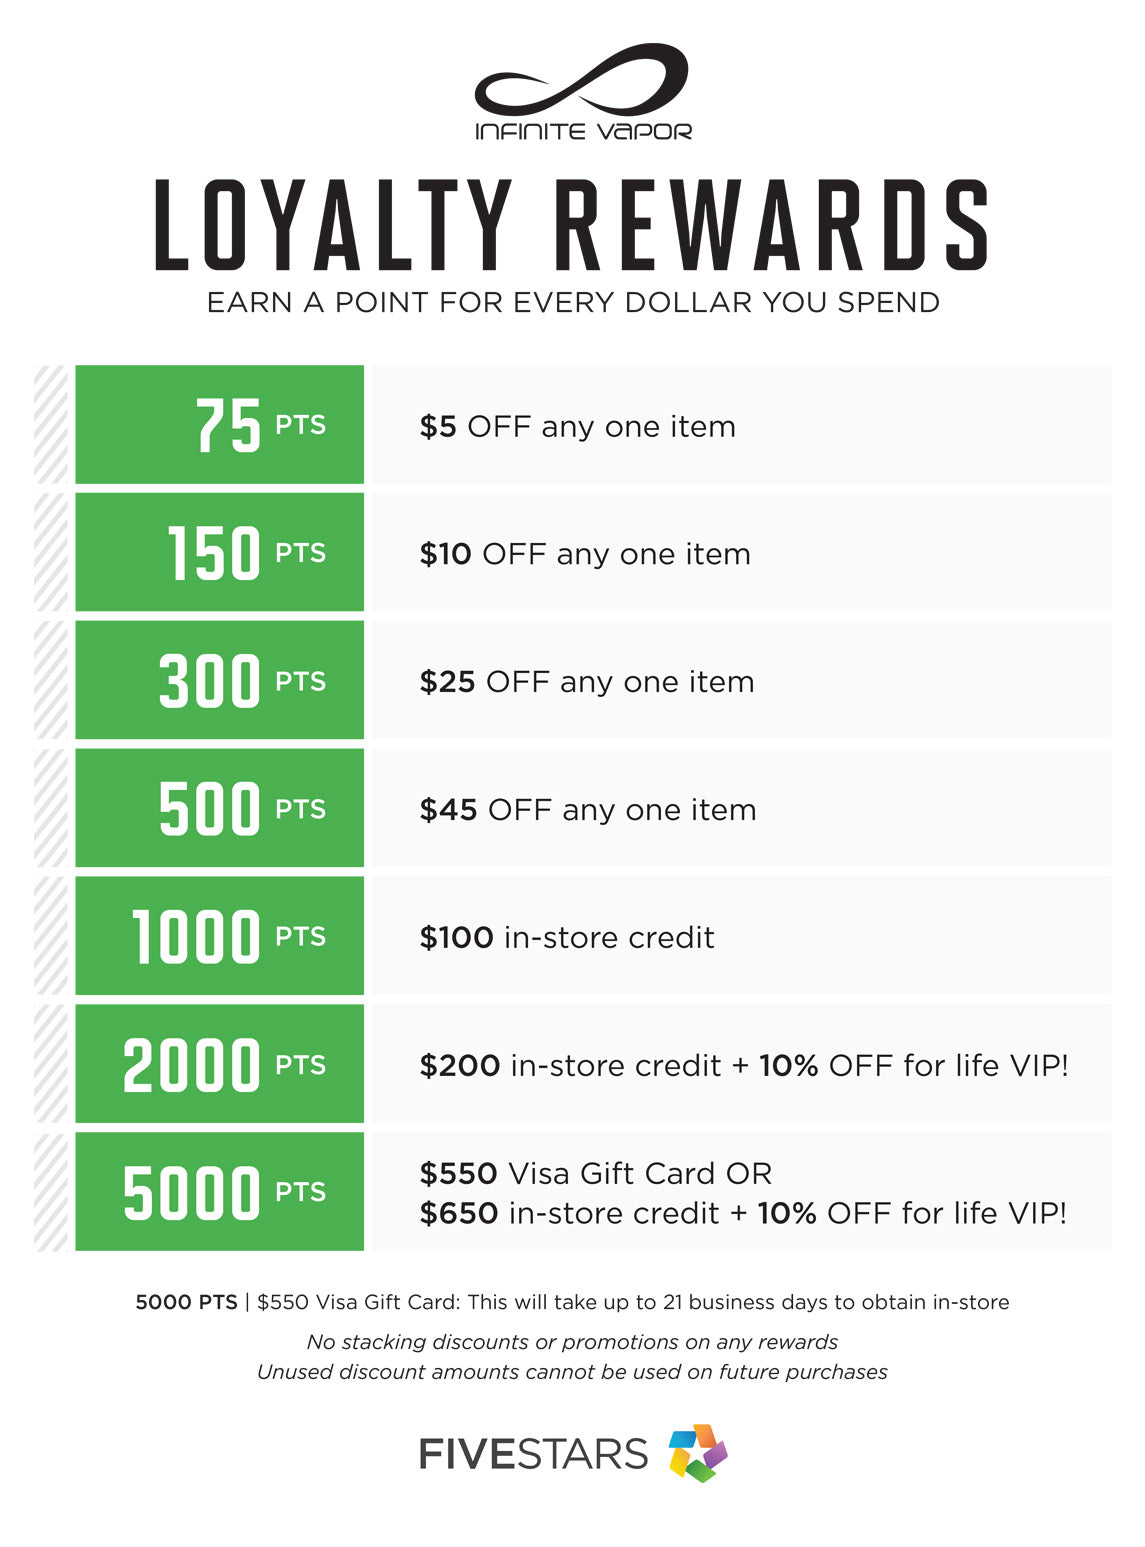 FiveStar Loyalty Rewards Infinite Vapor